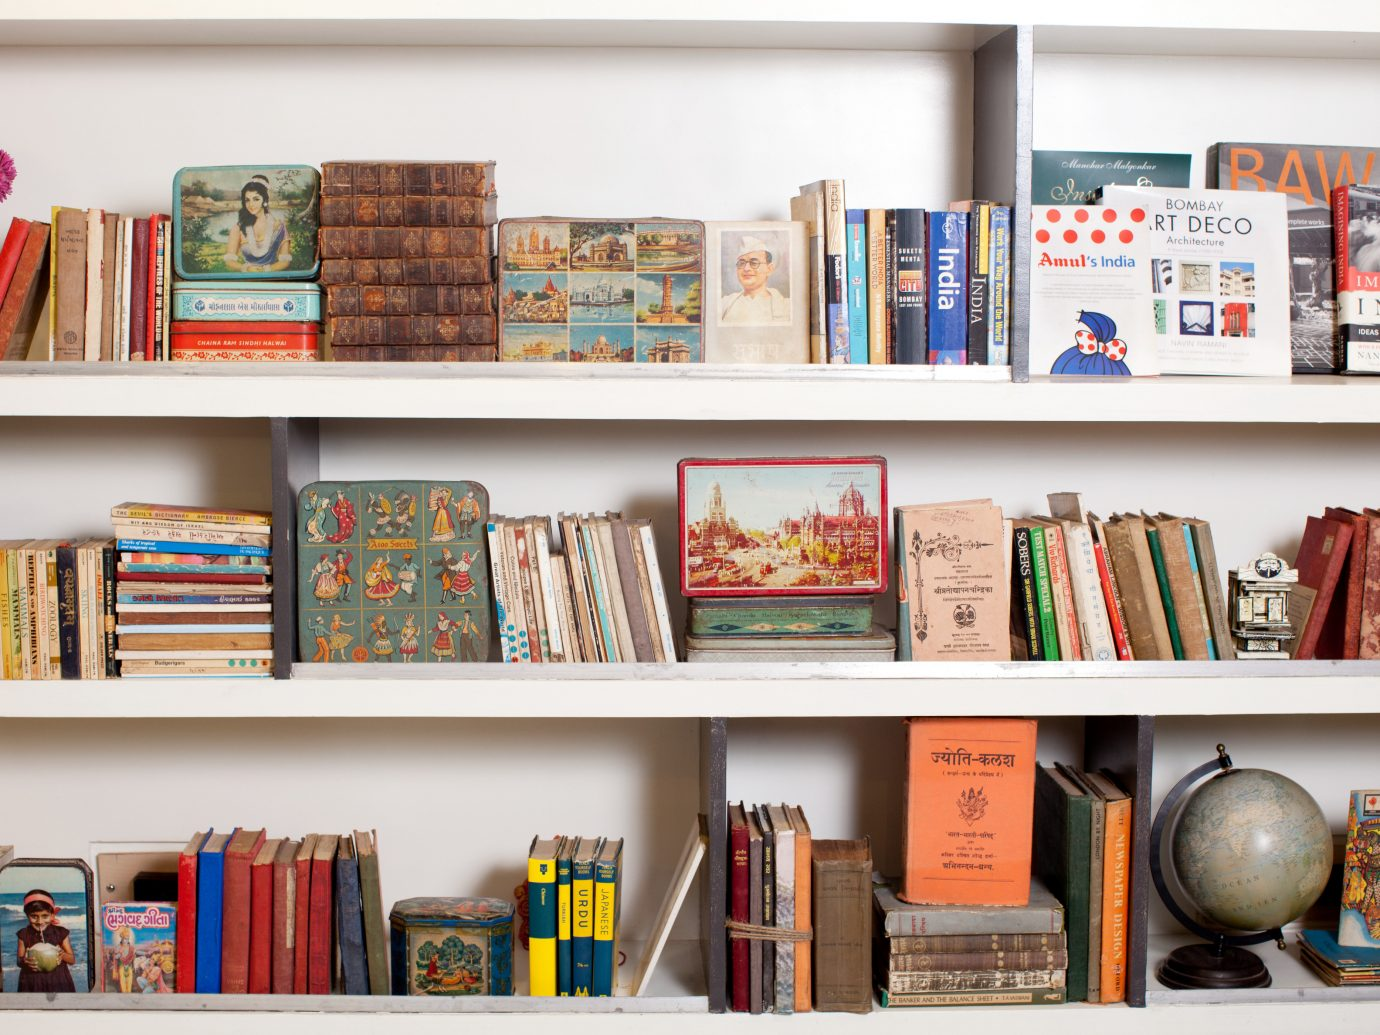 Hotels shelf indoor wall book furniture shelving room bookcase different many library lots bookselling bunch various several bookshelf